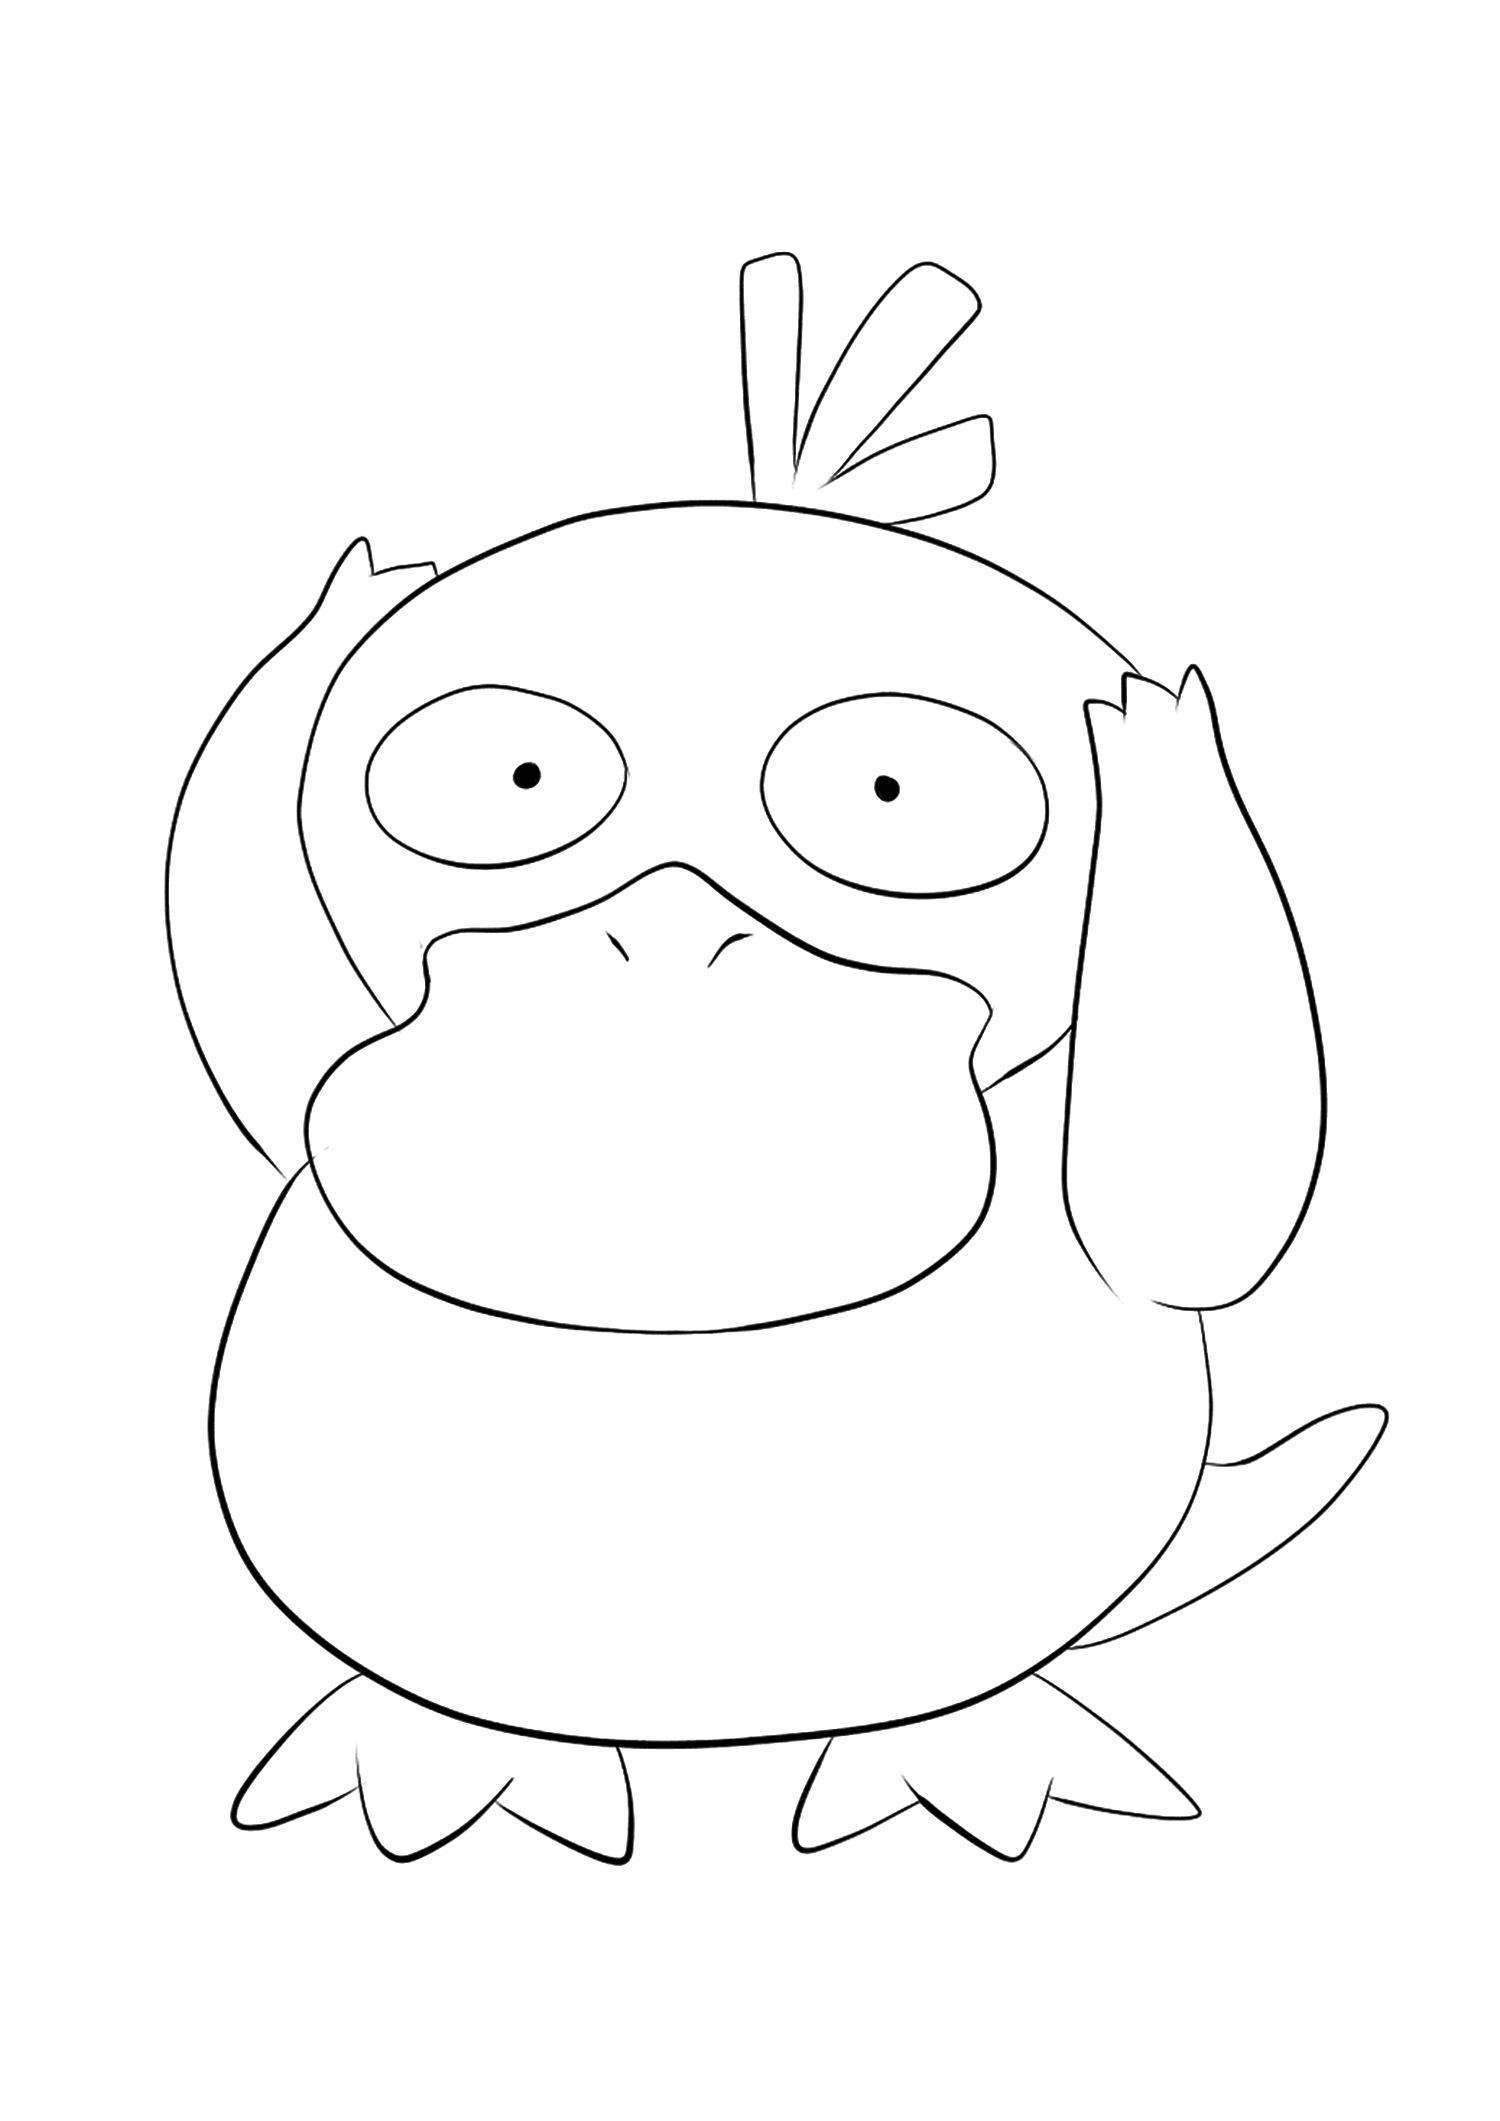 pokemon kingdra coloring pages psyduck coloring pages coloring home coloring kingdra pokemon pages